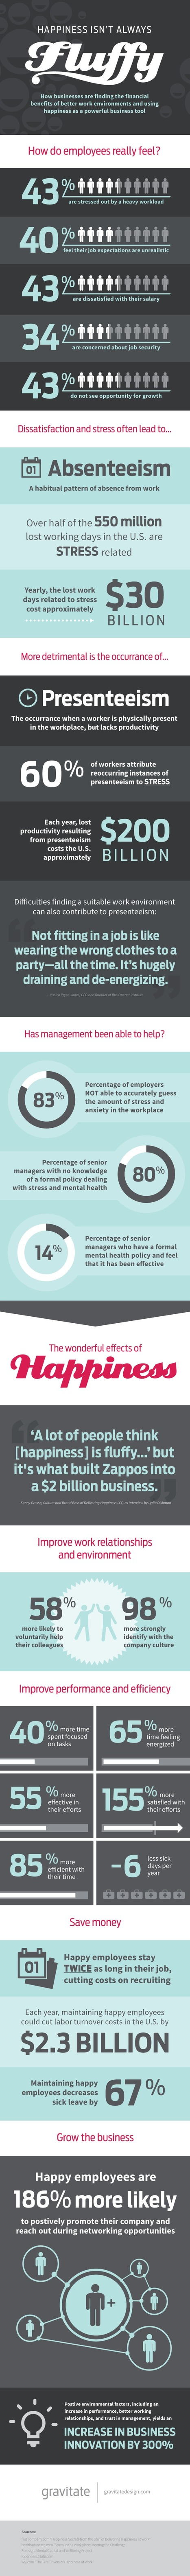 employee-happiness-as-a-business-tool.png (700x9483 pixels) | Infographics and inspirations | Scoop.it